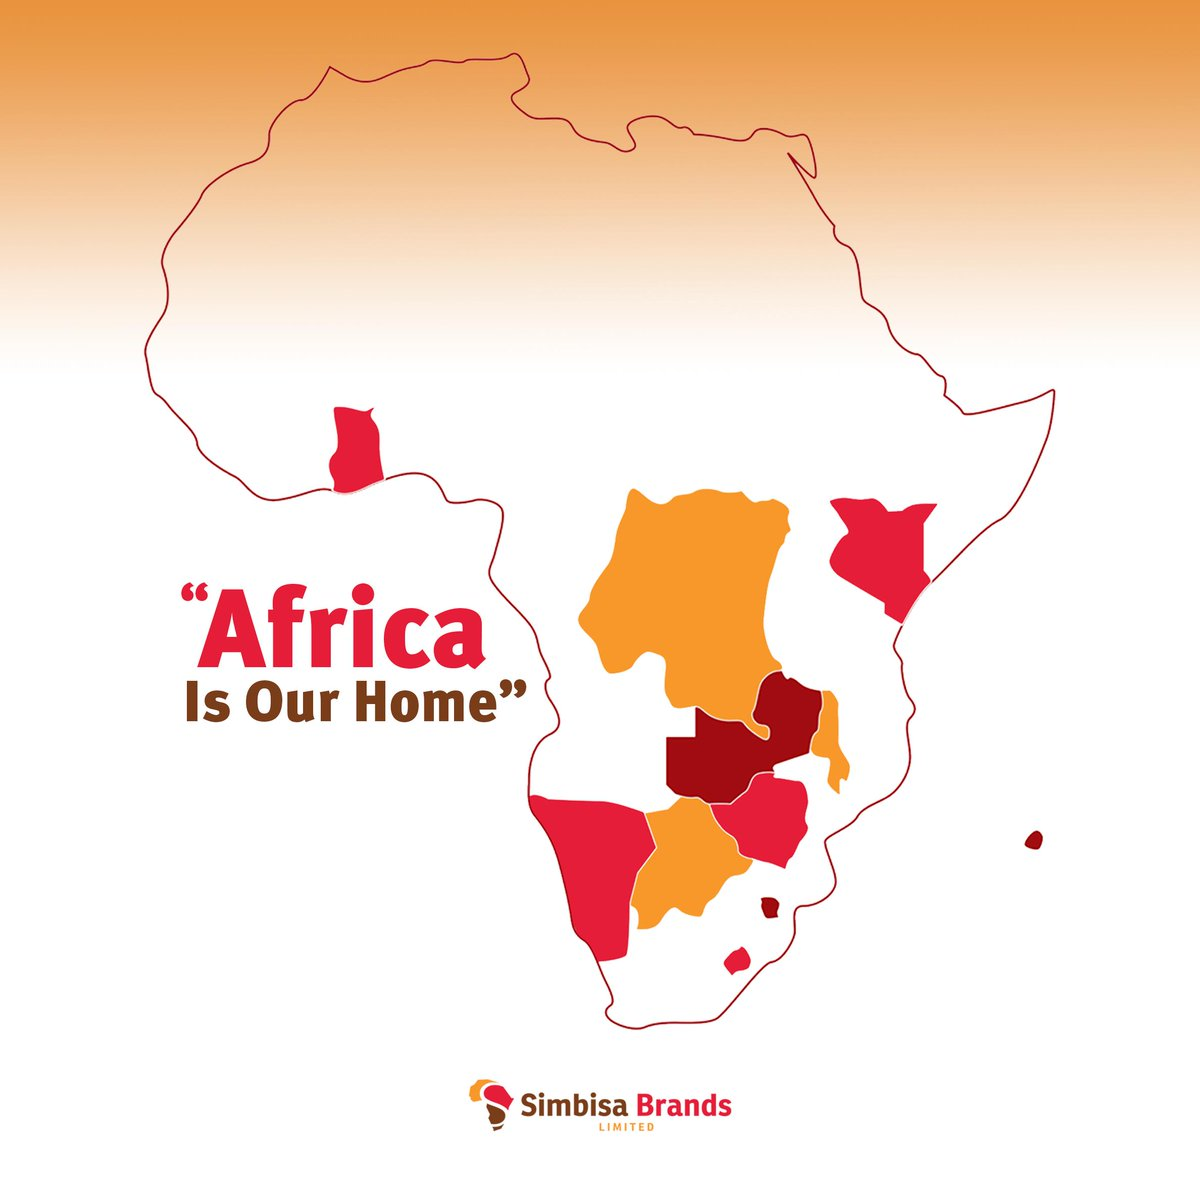 Simbisa Brands has 432 Quick Service Restaurants that operate in 11 countries across Africa. It was the first branded Quick Service Restaurant group to establish a successful pan-African footprint and with ambitions to  grow.  #AfricaIsOurHome  #StrengthenAndEmpower